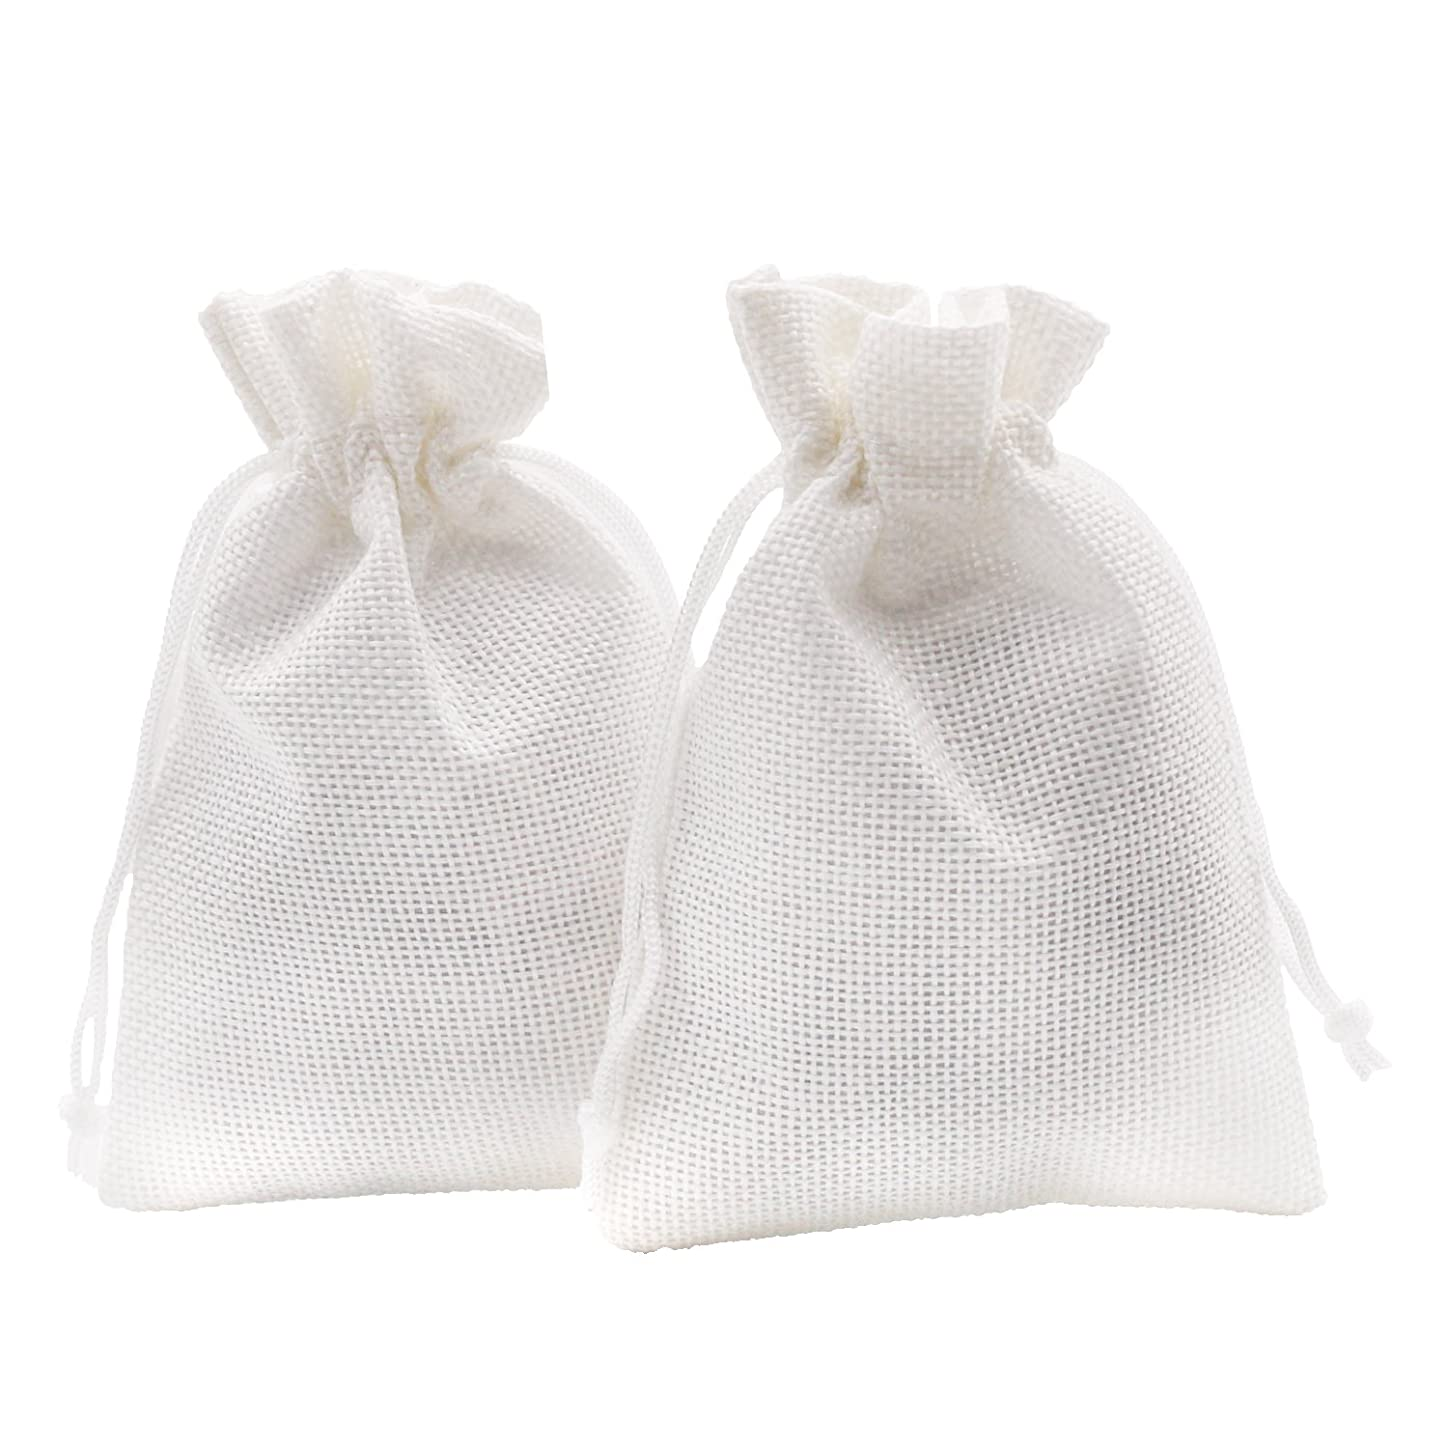 SumDirect Linen Gift Sachets Favors Pouches Party Wedding Jewelry Craft Sacks White Burlap Bags with Nylon Drawstring, 3.7x5.5 Inches,Pack of 20 sjxlraq328687